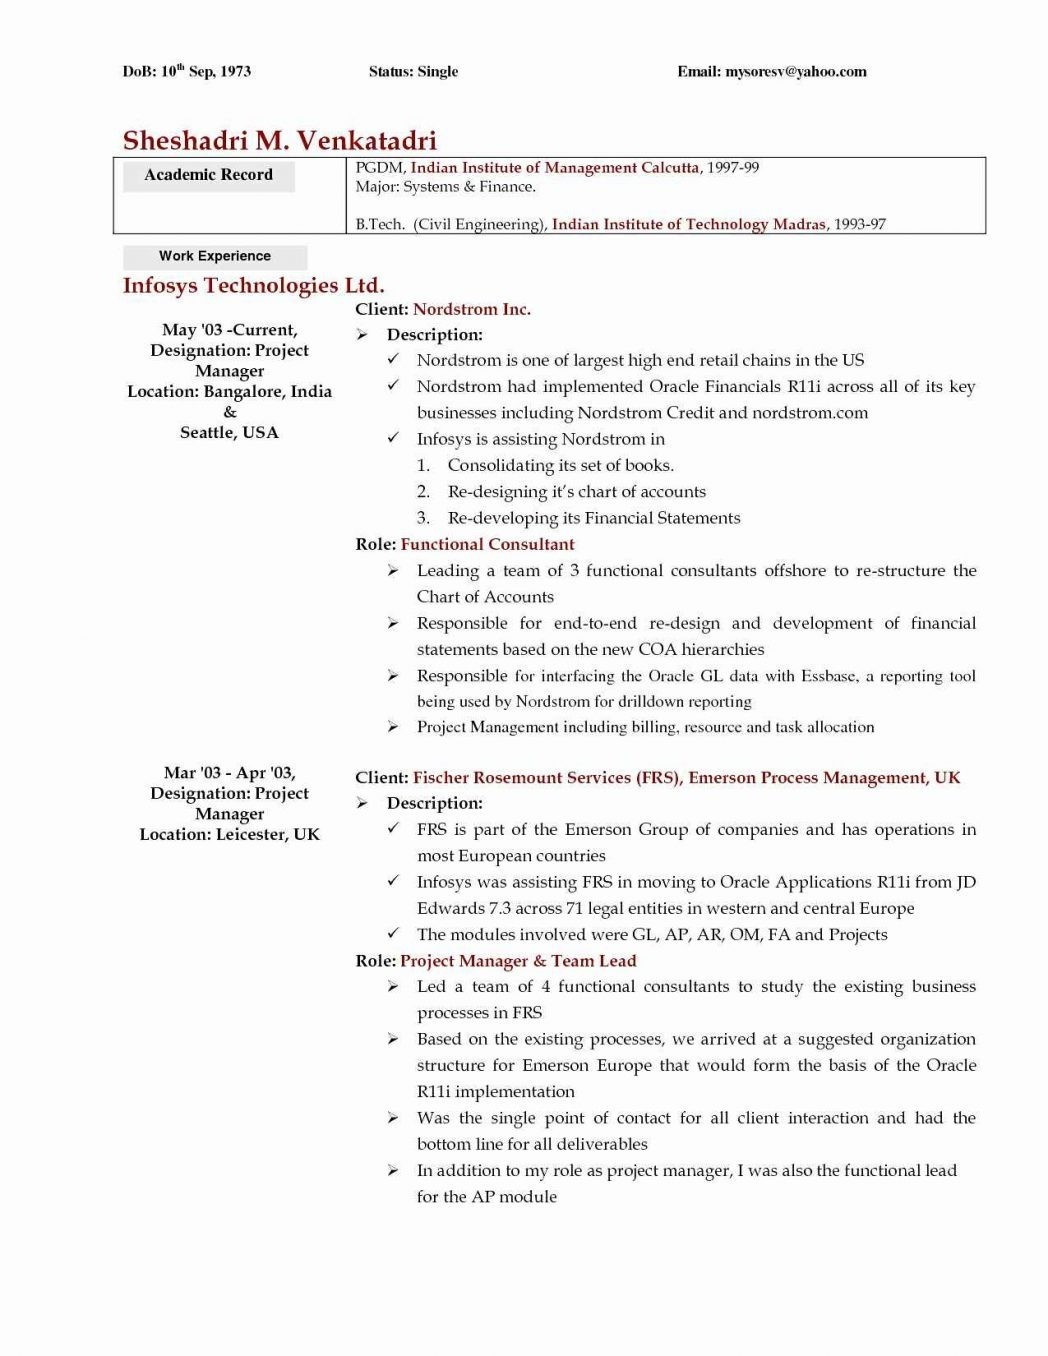 Pharmacist Resume Template - Legal assistant Resume Awesome Secretary Resume Examples Lovely